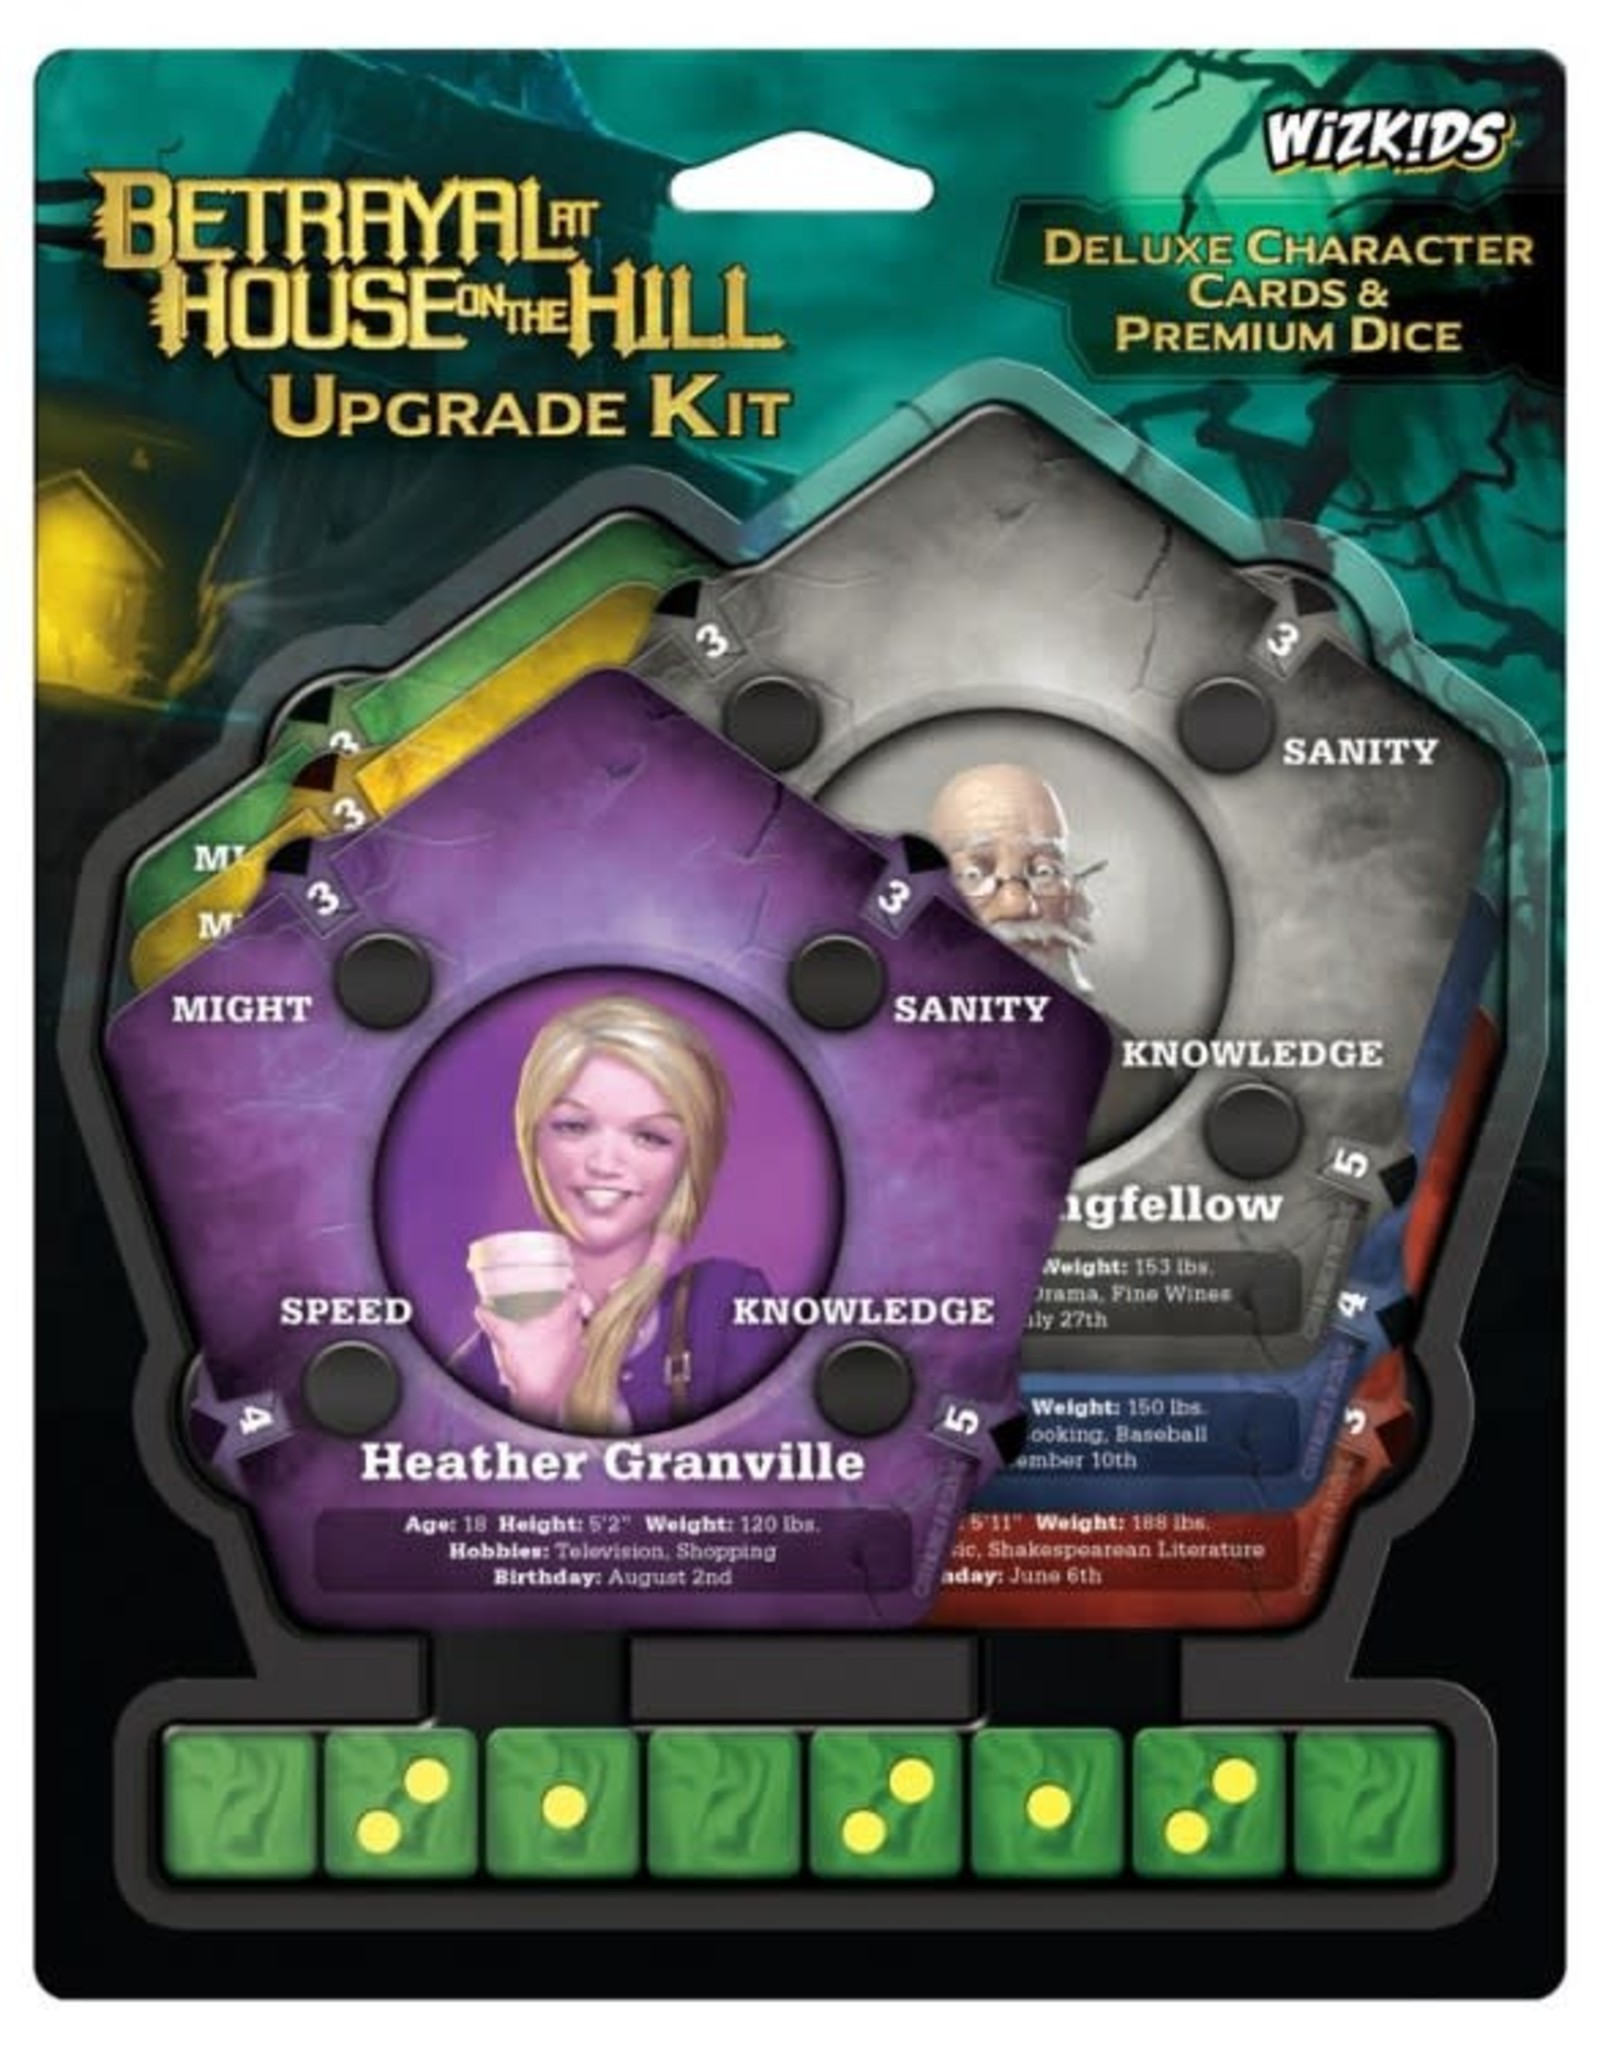 WizKids Betrayal at House Upgrade Kit